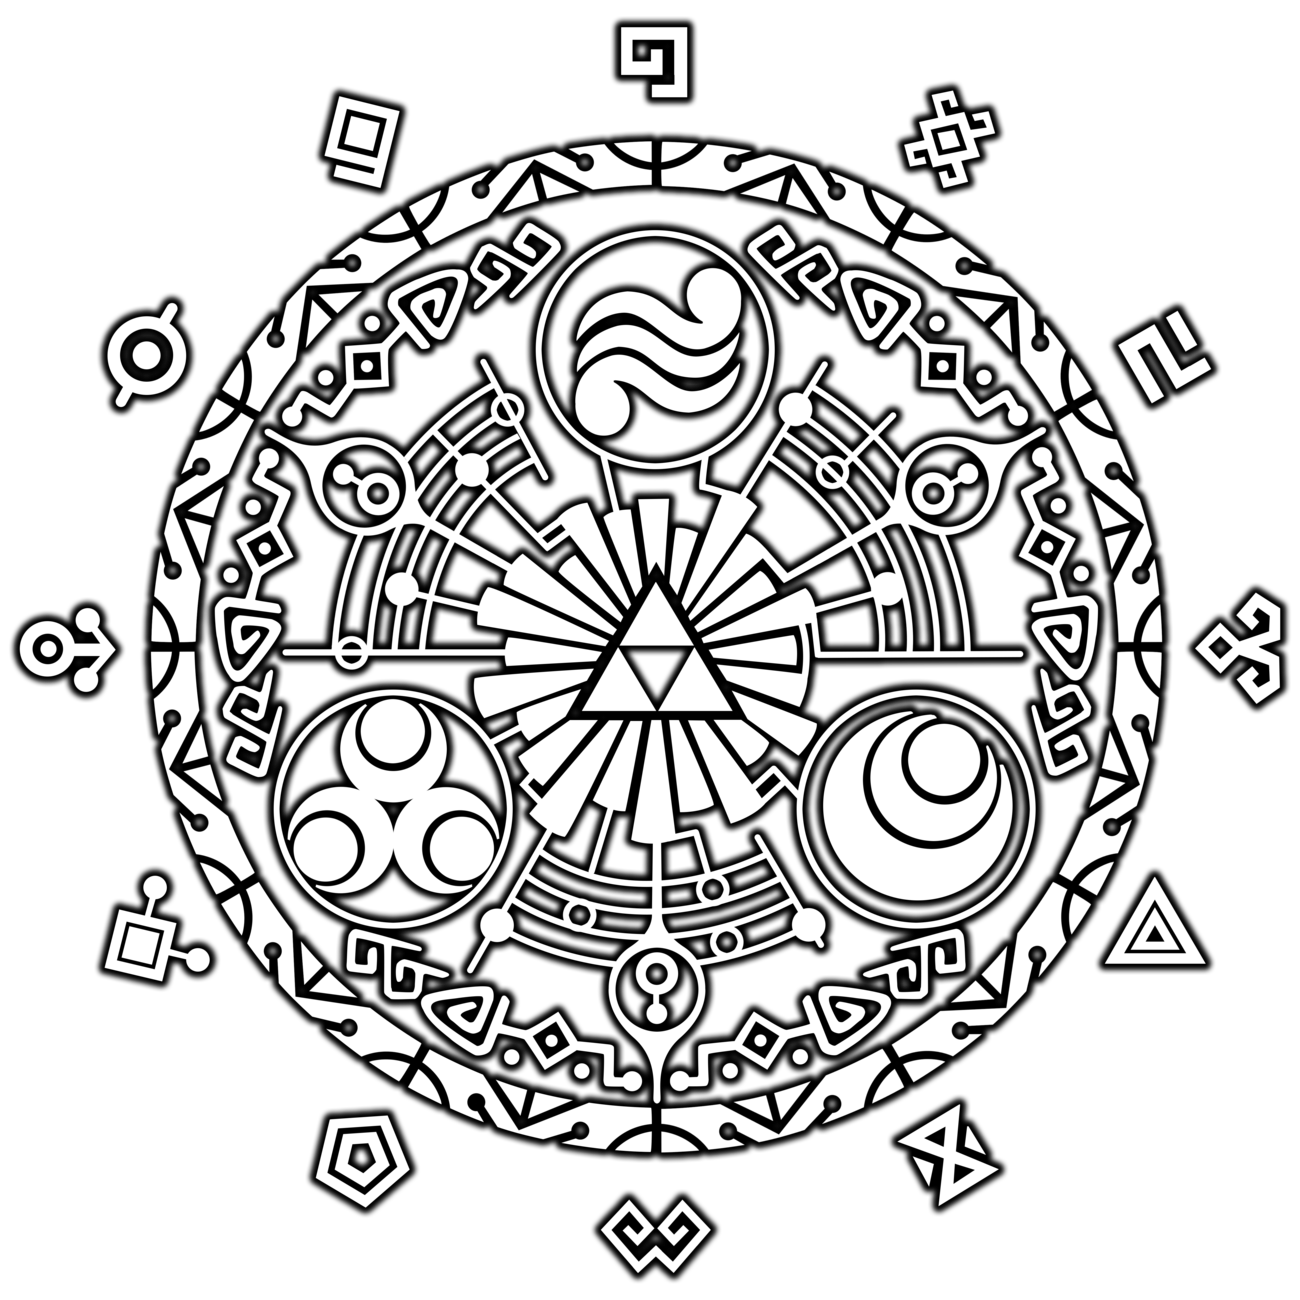 Triforce drawing circle. Click for a larger